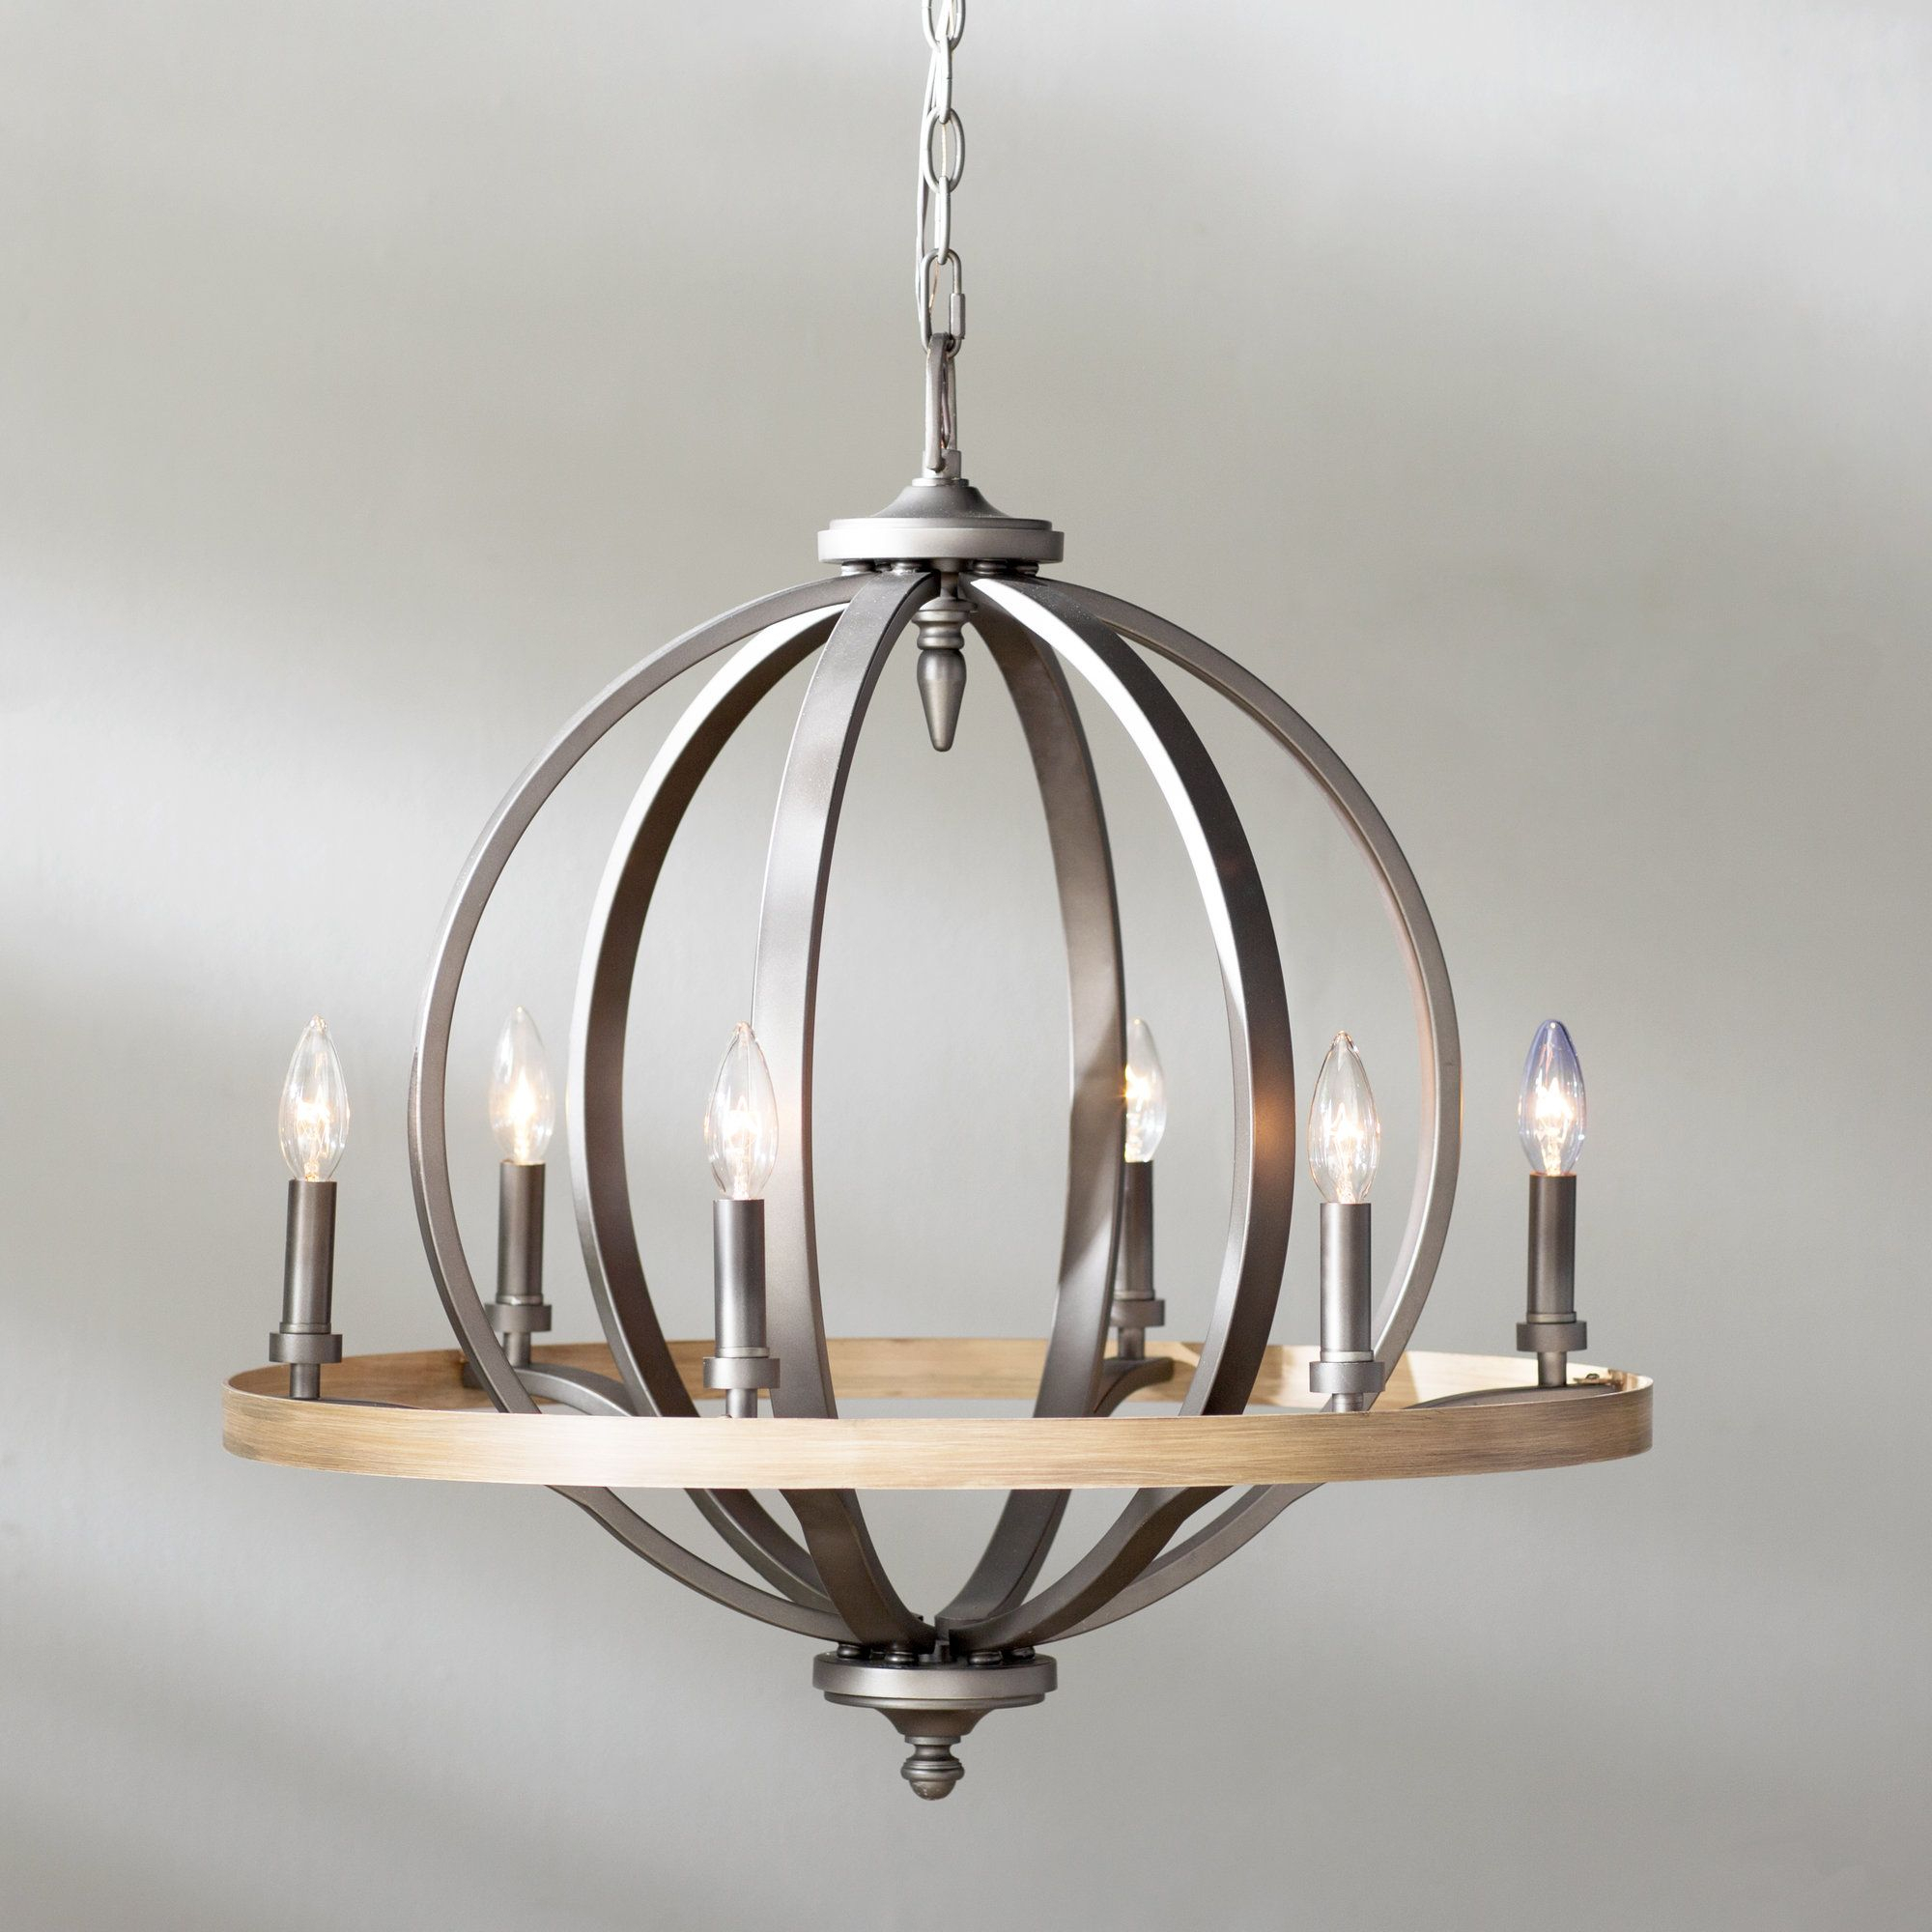 Crozier 6 Light Candle Style Chandelier | Products Throughout Bennington 6 Light Candle Style Chandeliers (View 23 of 30)